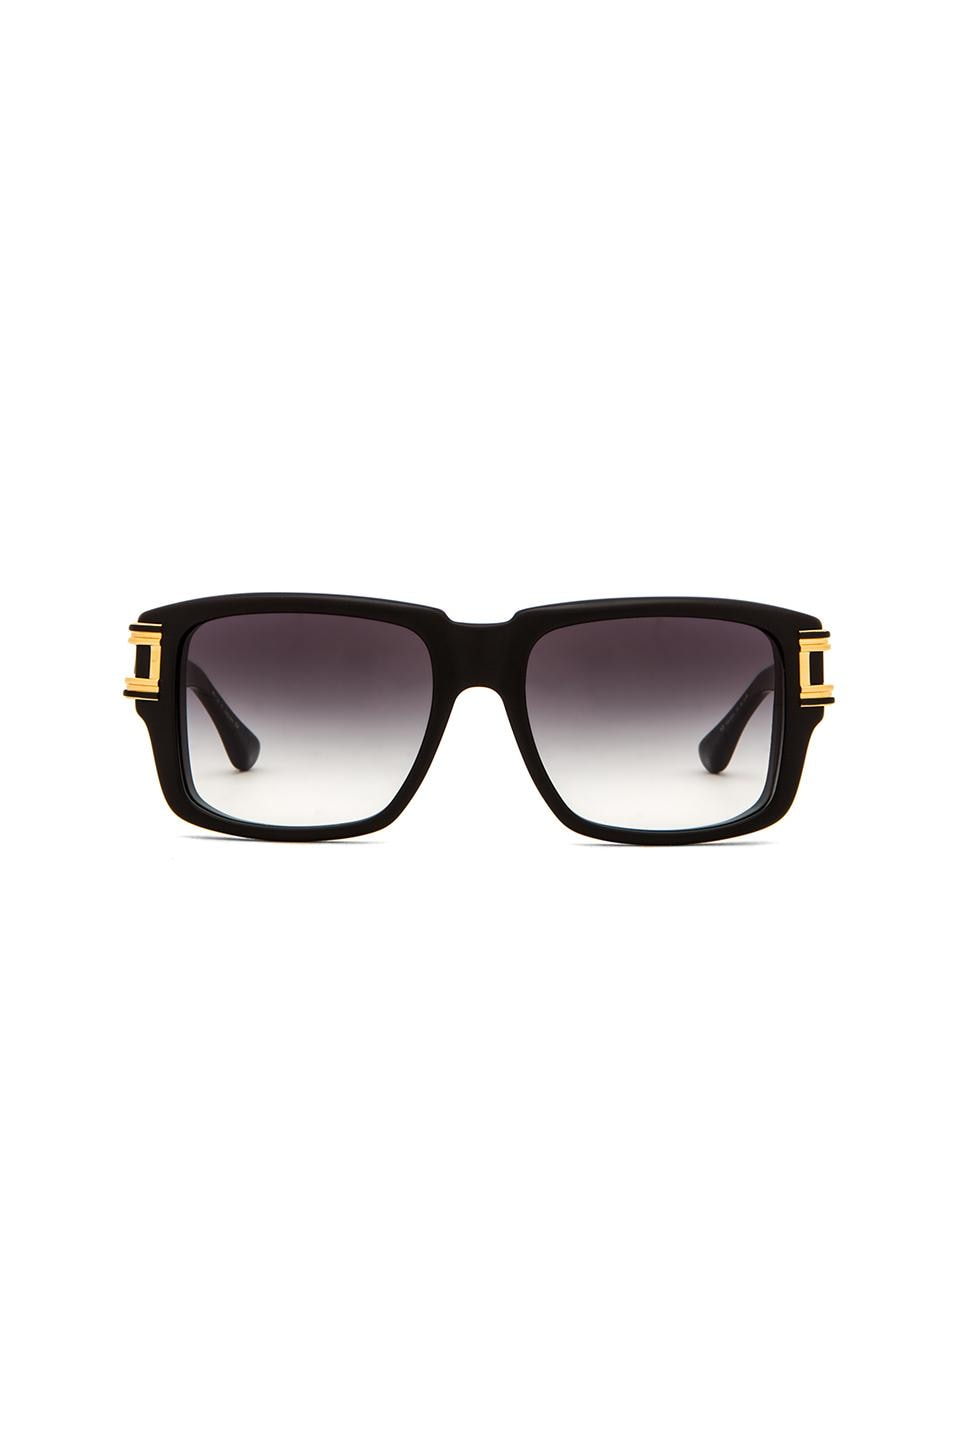 Dita Grandmaster Two in Matte Black & 18k Gold